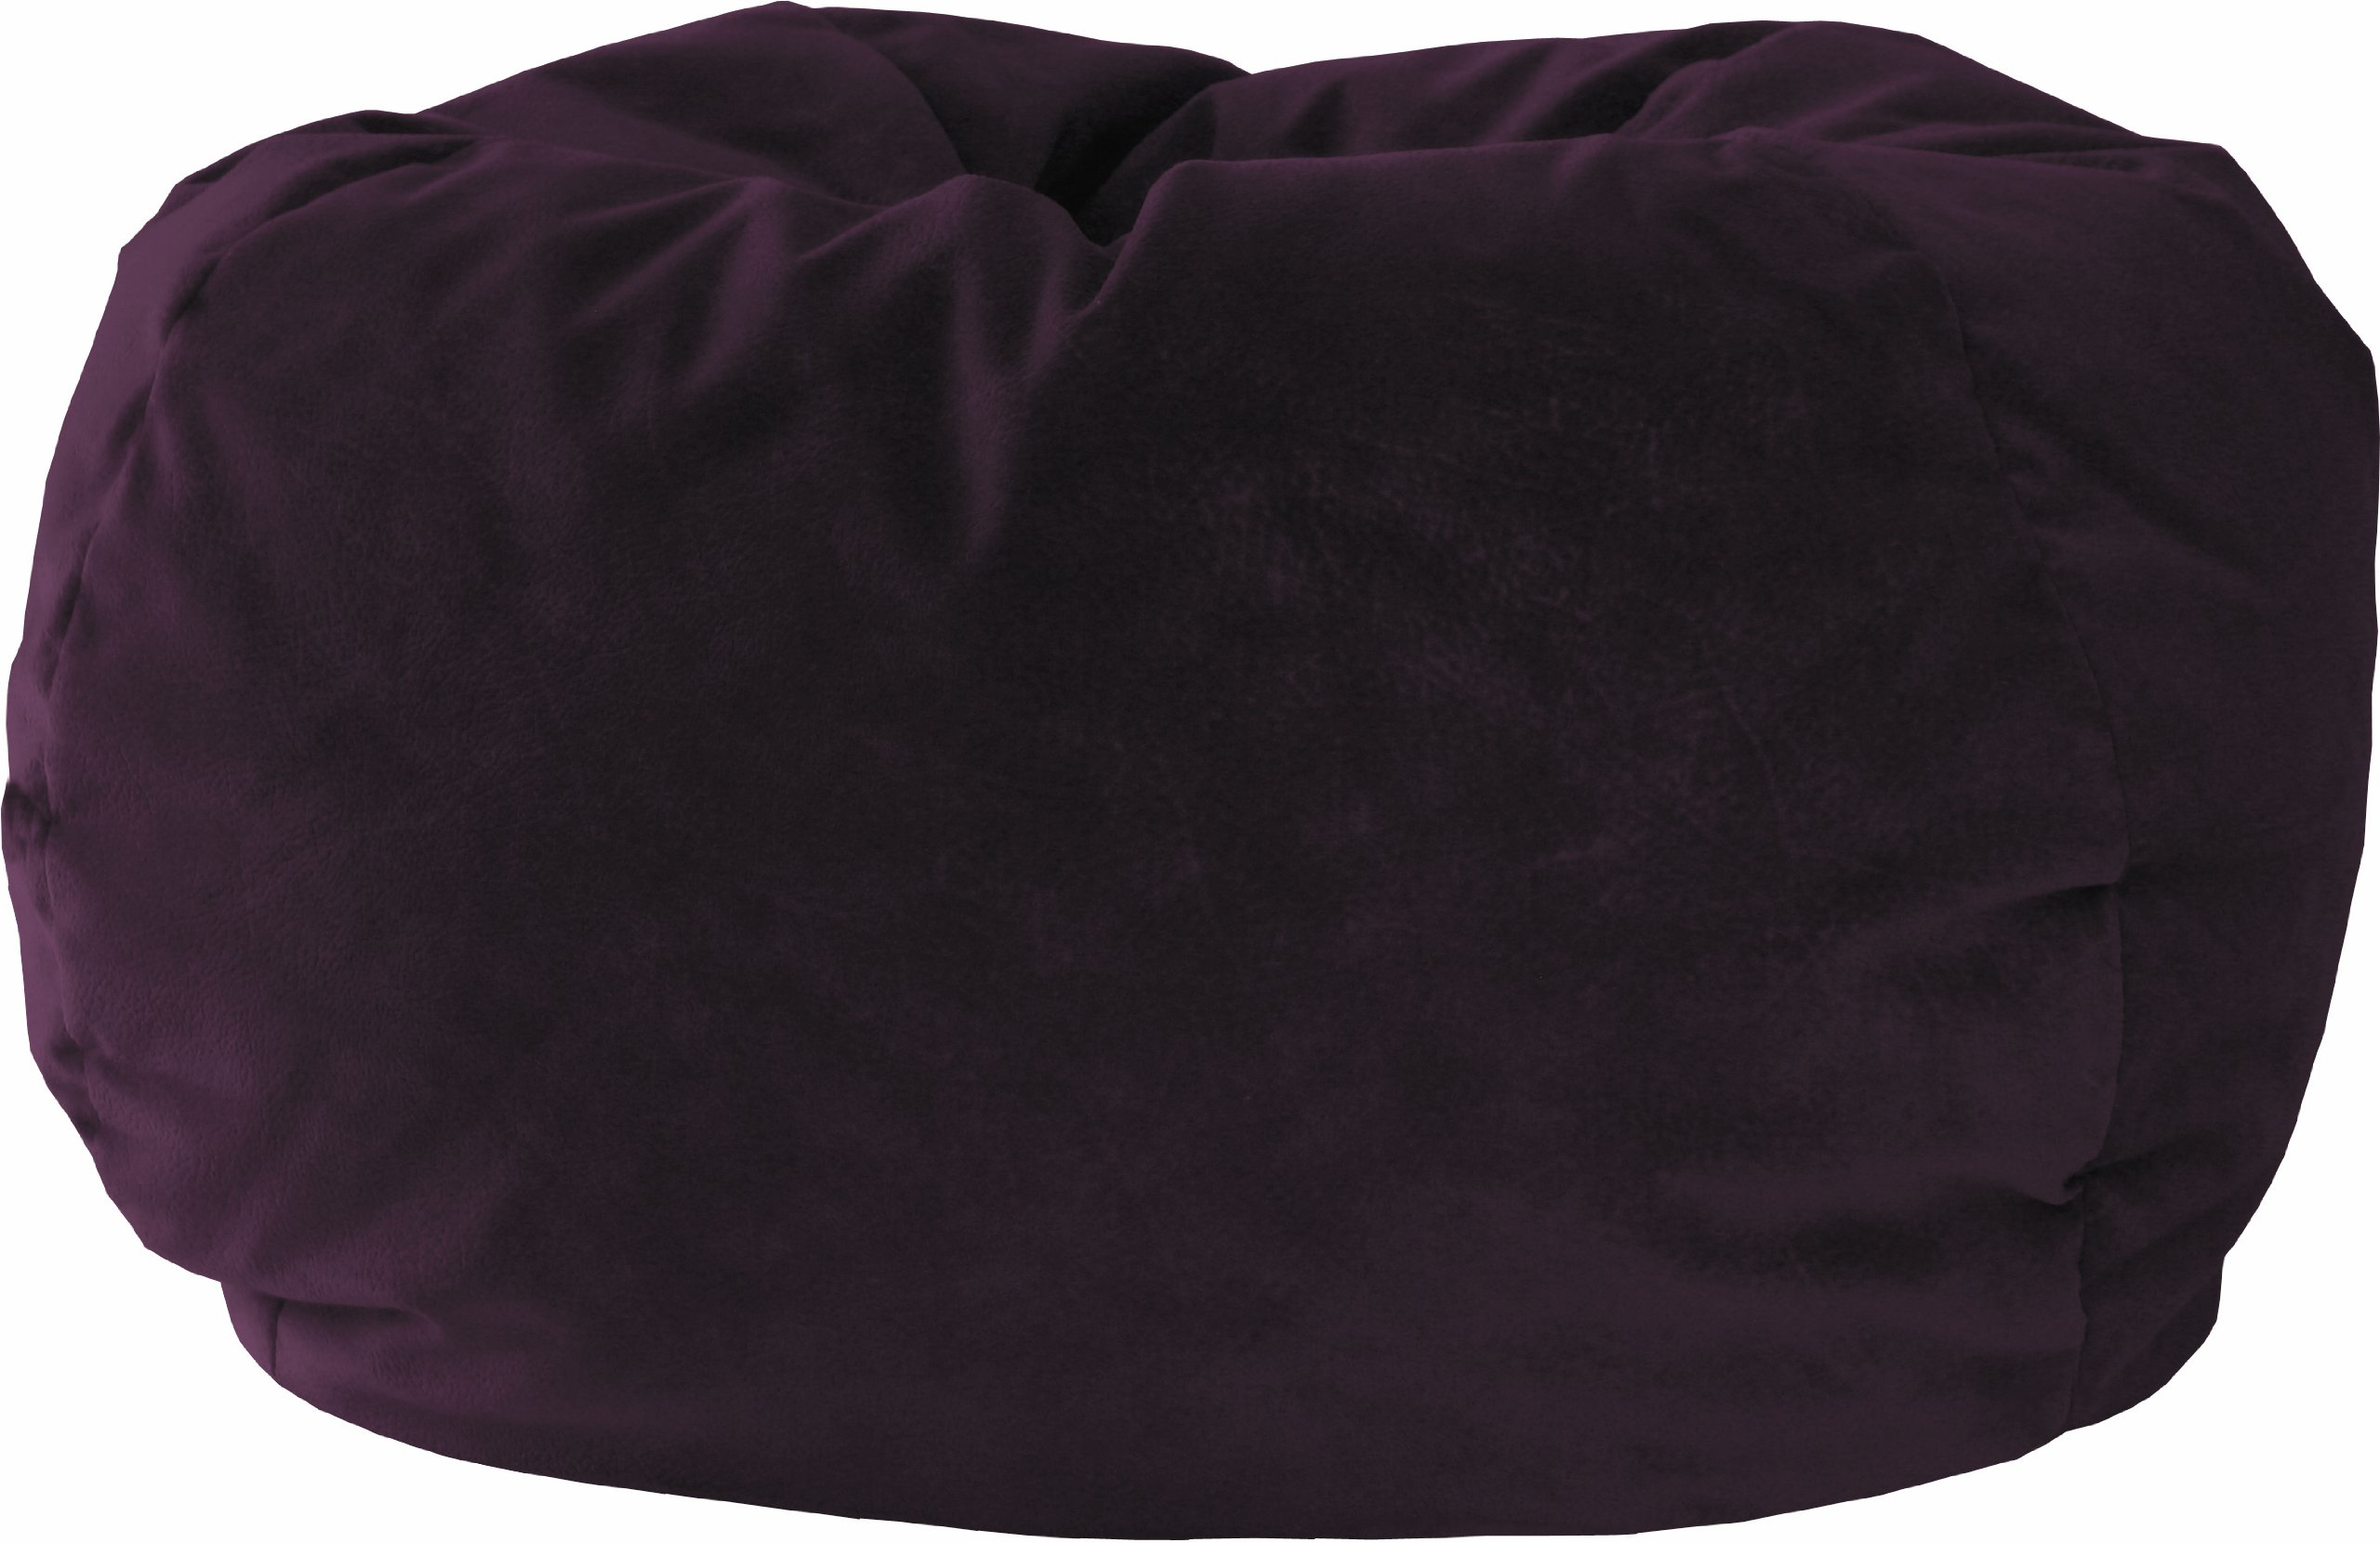 Gold Medal Bean Bags 30012858847 X-Large Fairview Suede Bean Bag, Wine